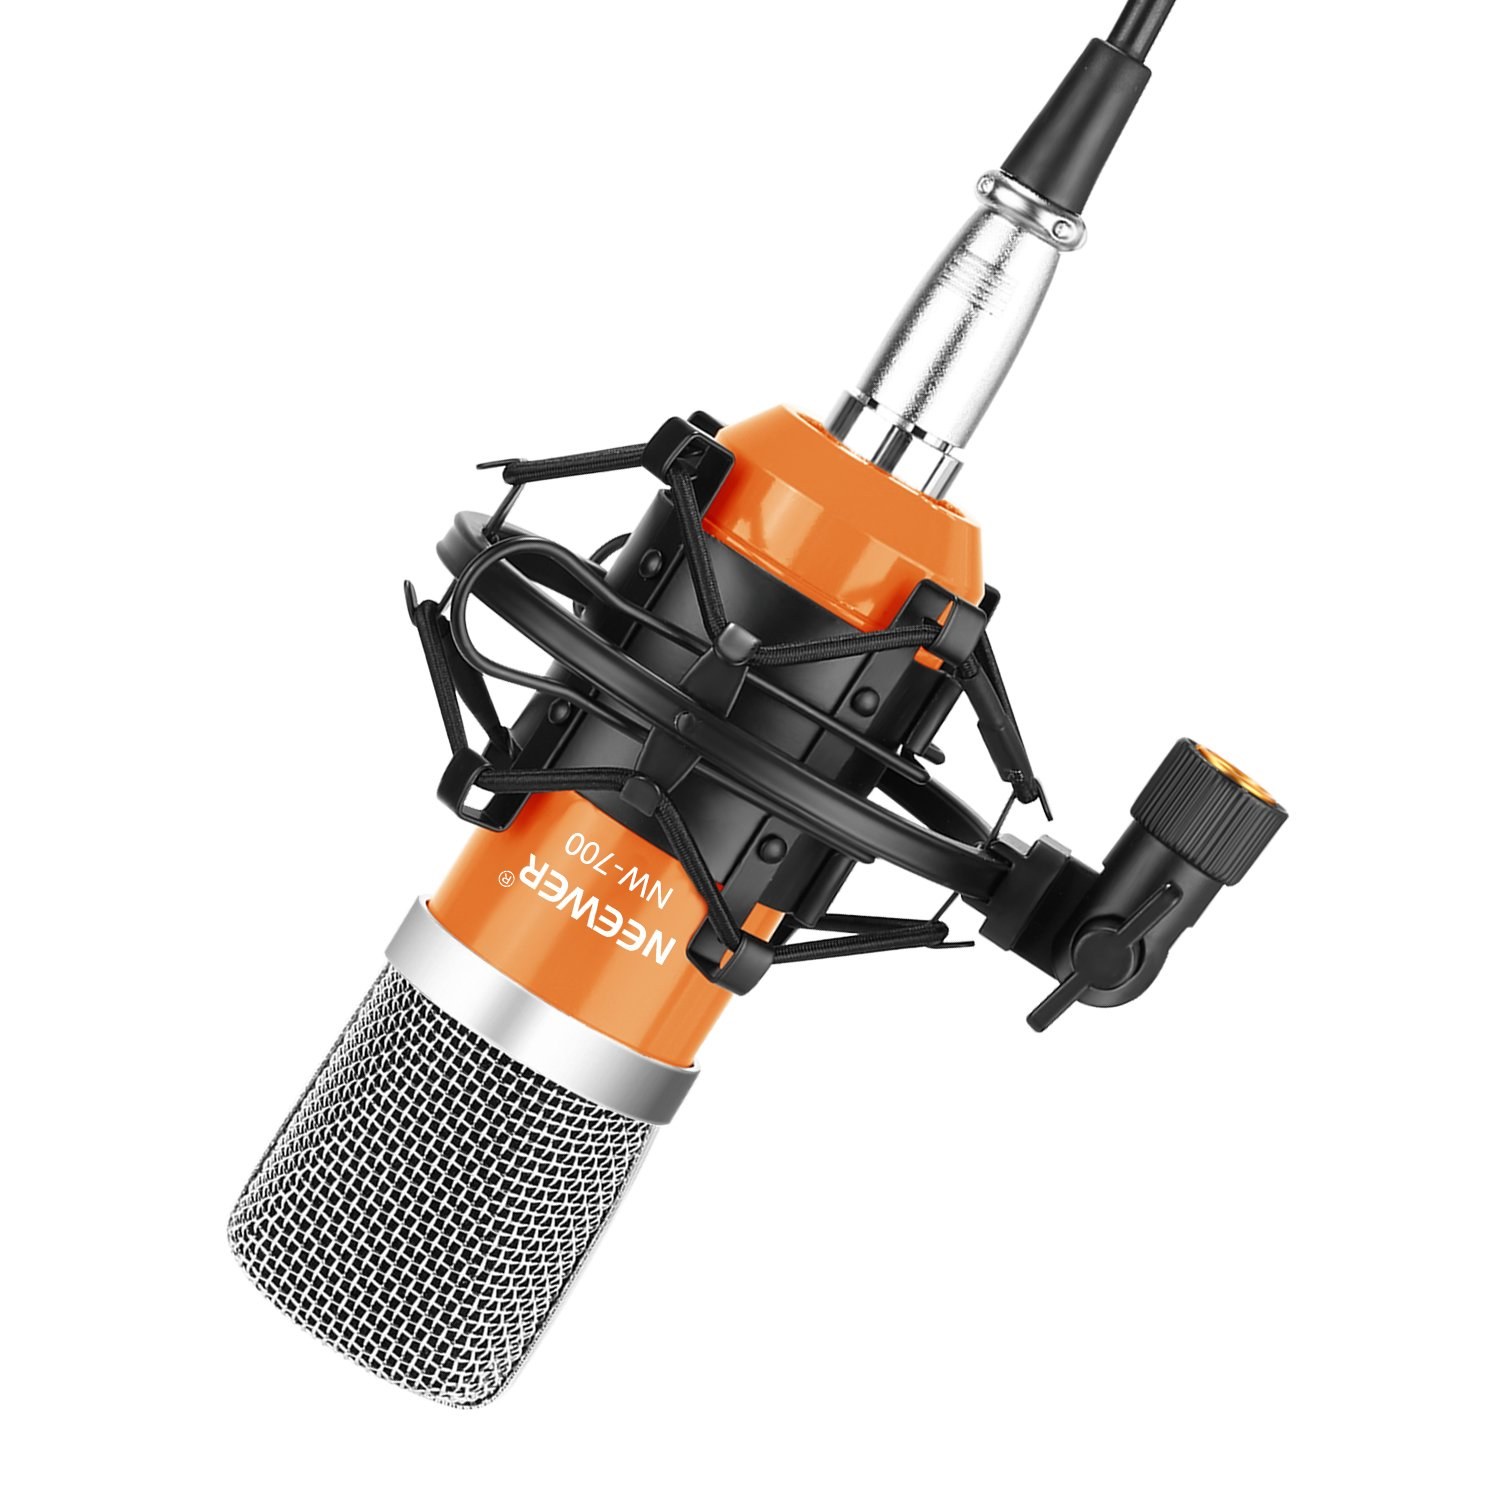 Neewer WHLC114® NW-700 Professional Studio Broadcasting & Recording Condenser Microphone Set Including: (1)NW-700 Condenser Microphone + (1)Metal Microphone Shock Mount + (1)Ball-type Anti-wind Foam Cap + (1)Microphone Audio Cable (Black) NEEWN 4008472